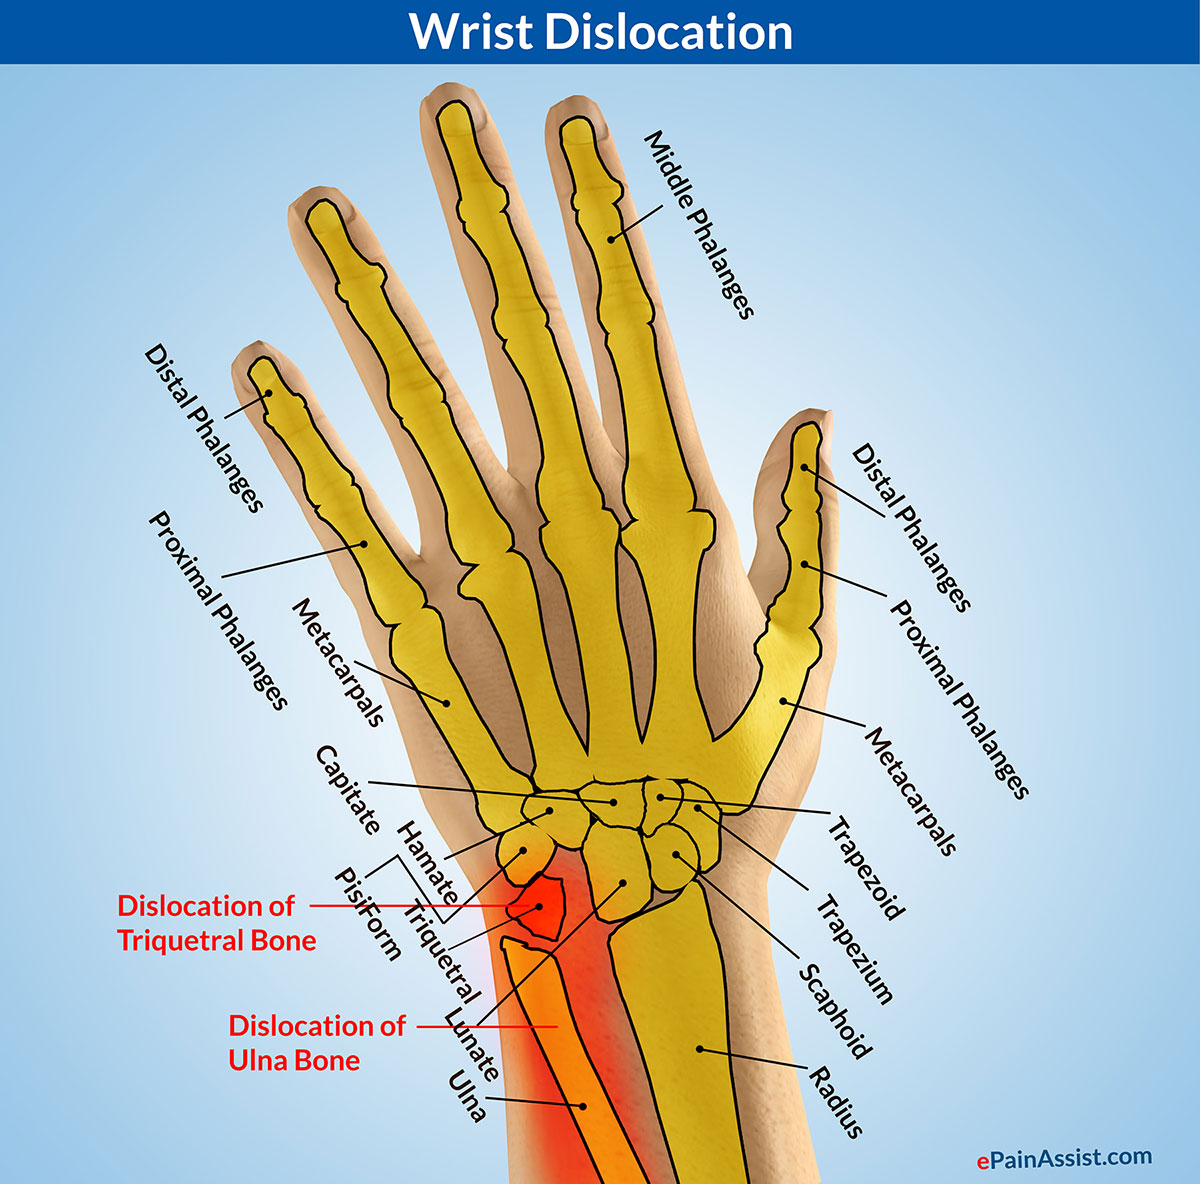 Wrist Dislocationtypescausessignssymptomstreatmentexercises